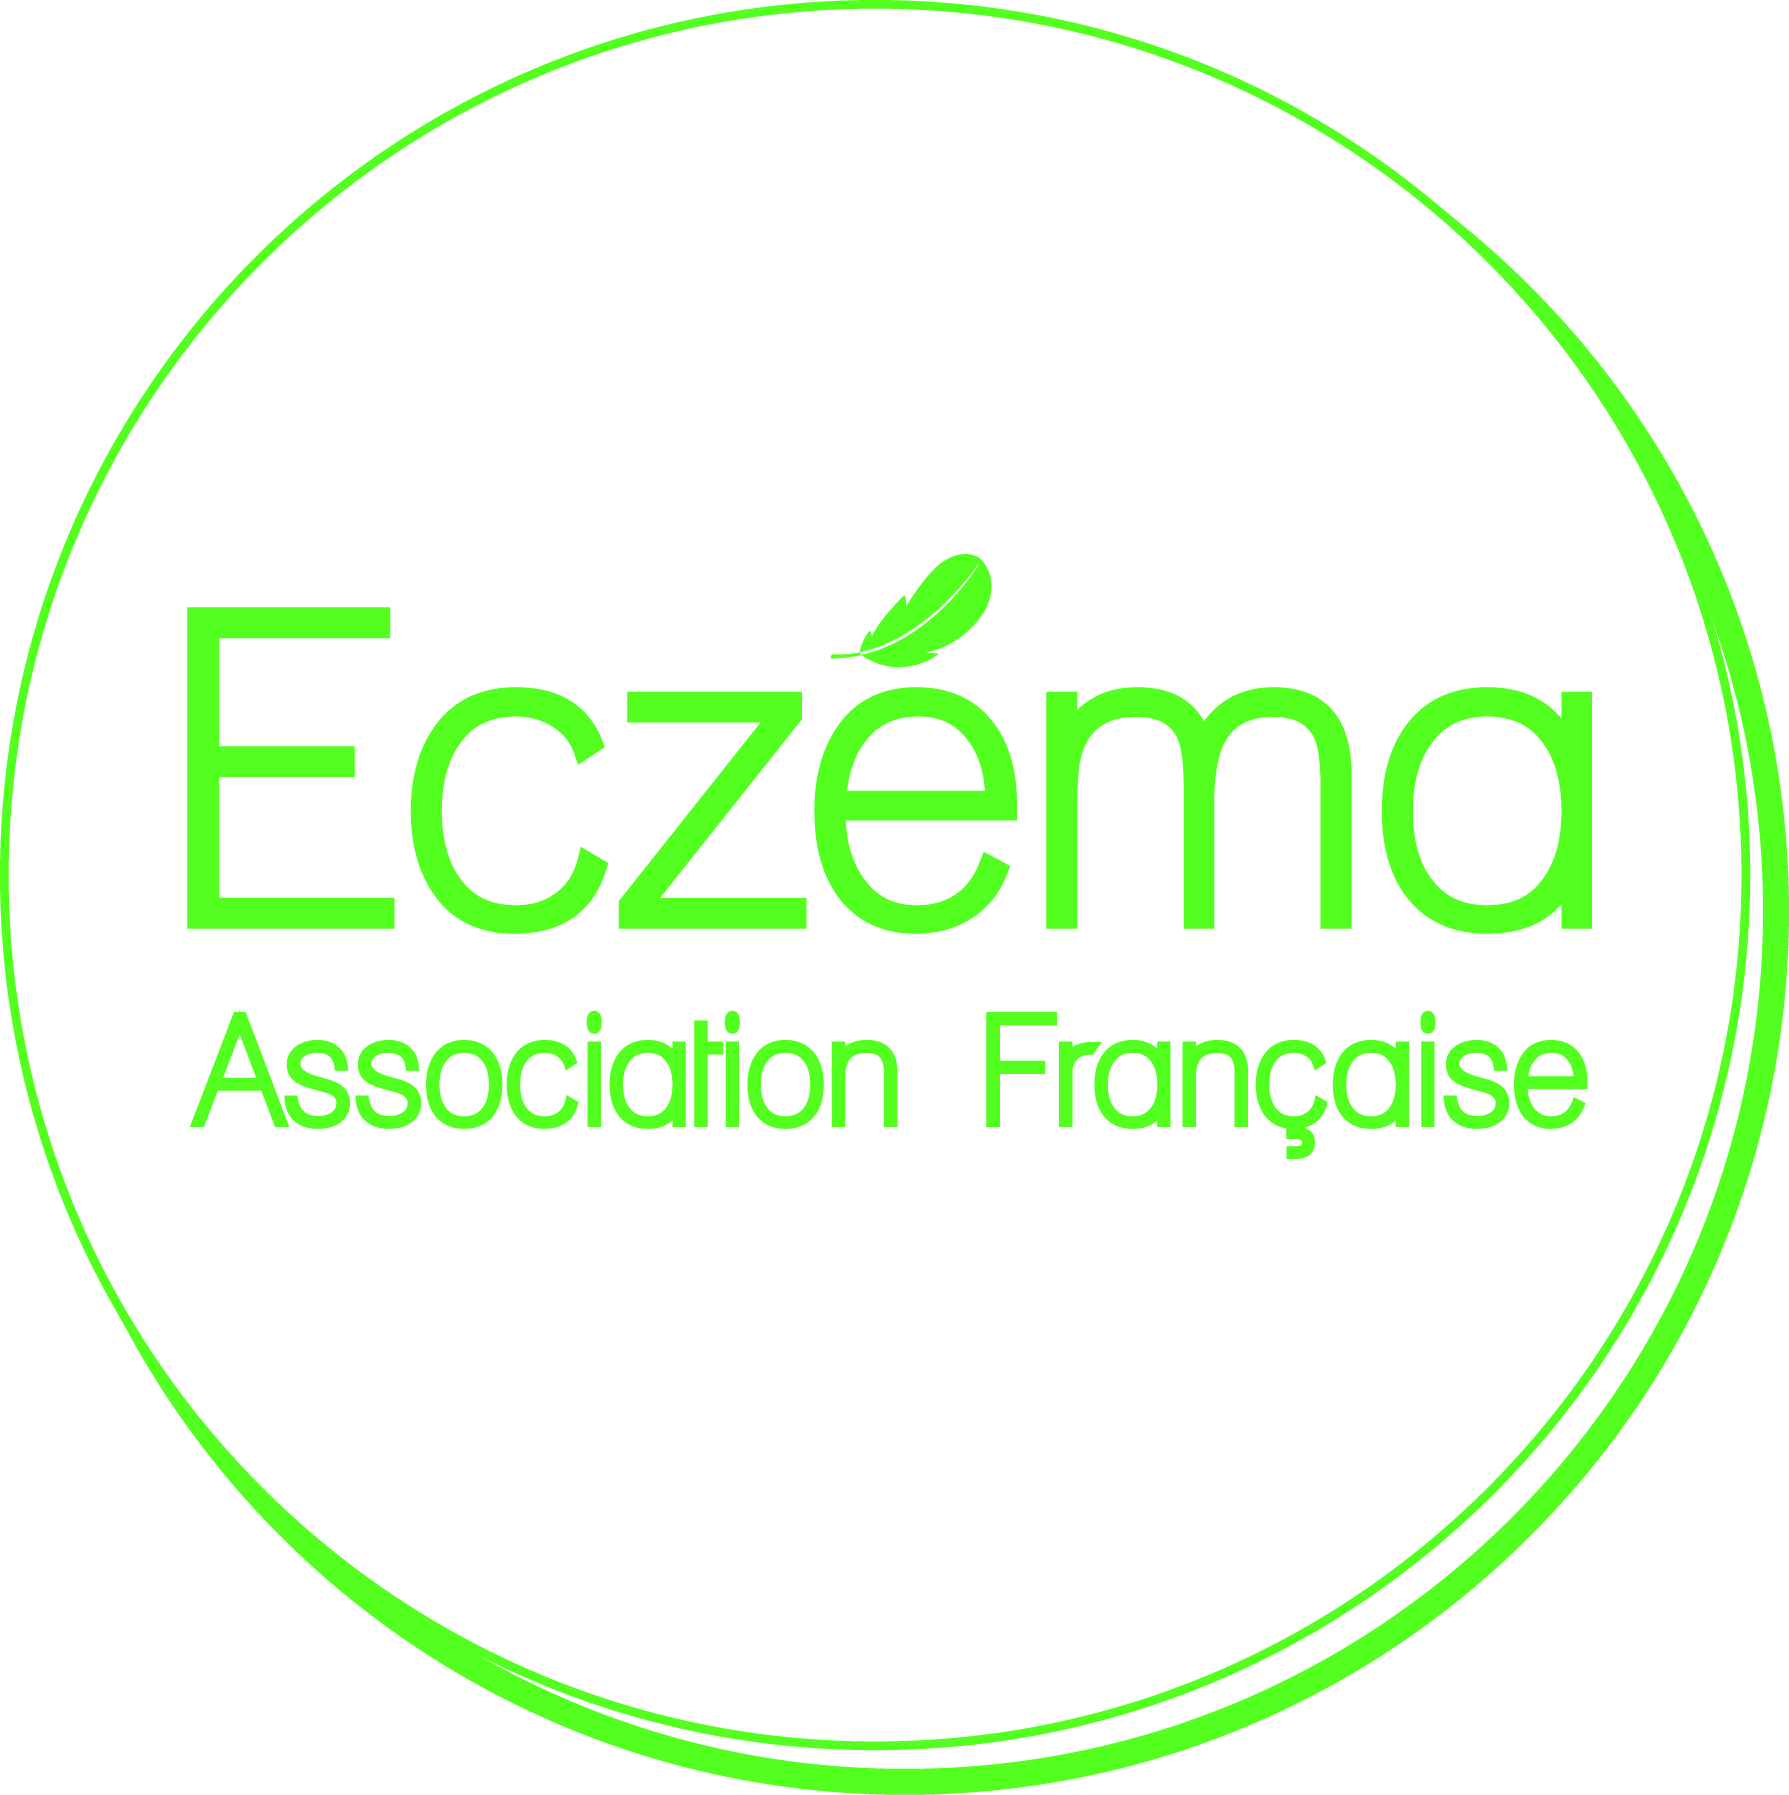 France Association Française de lEczema